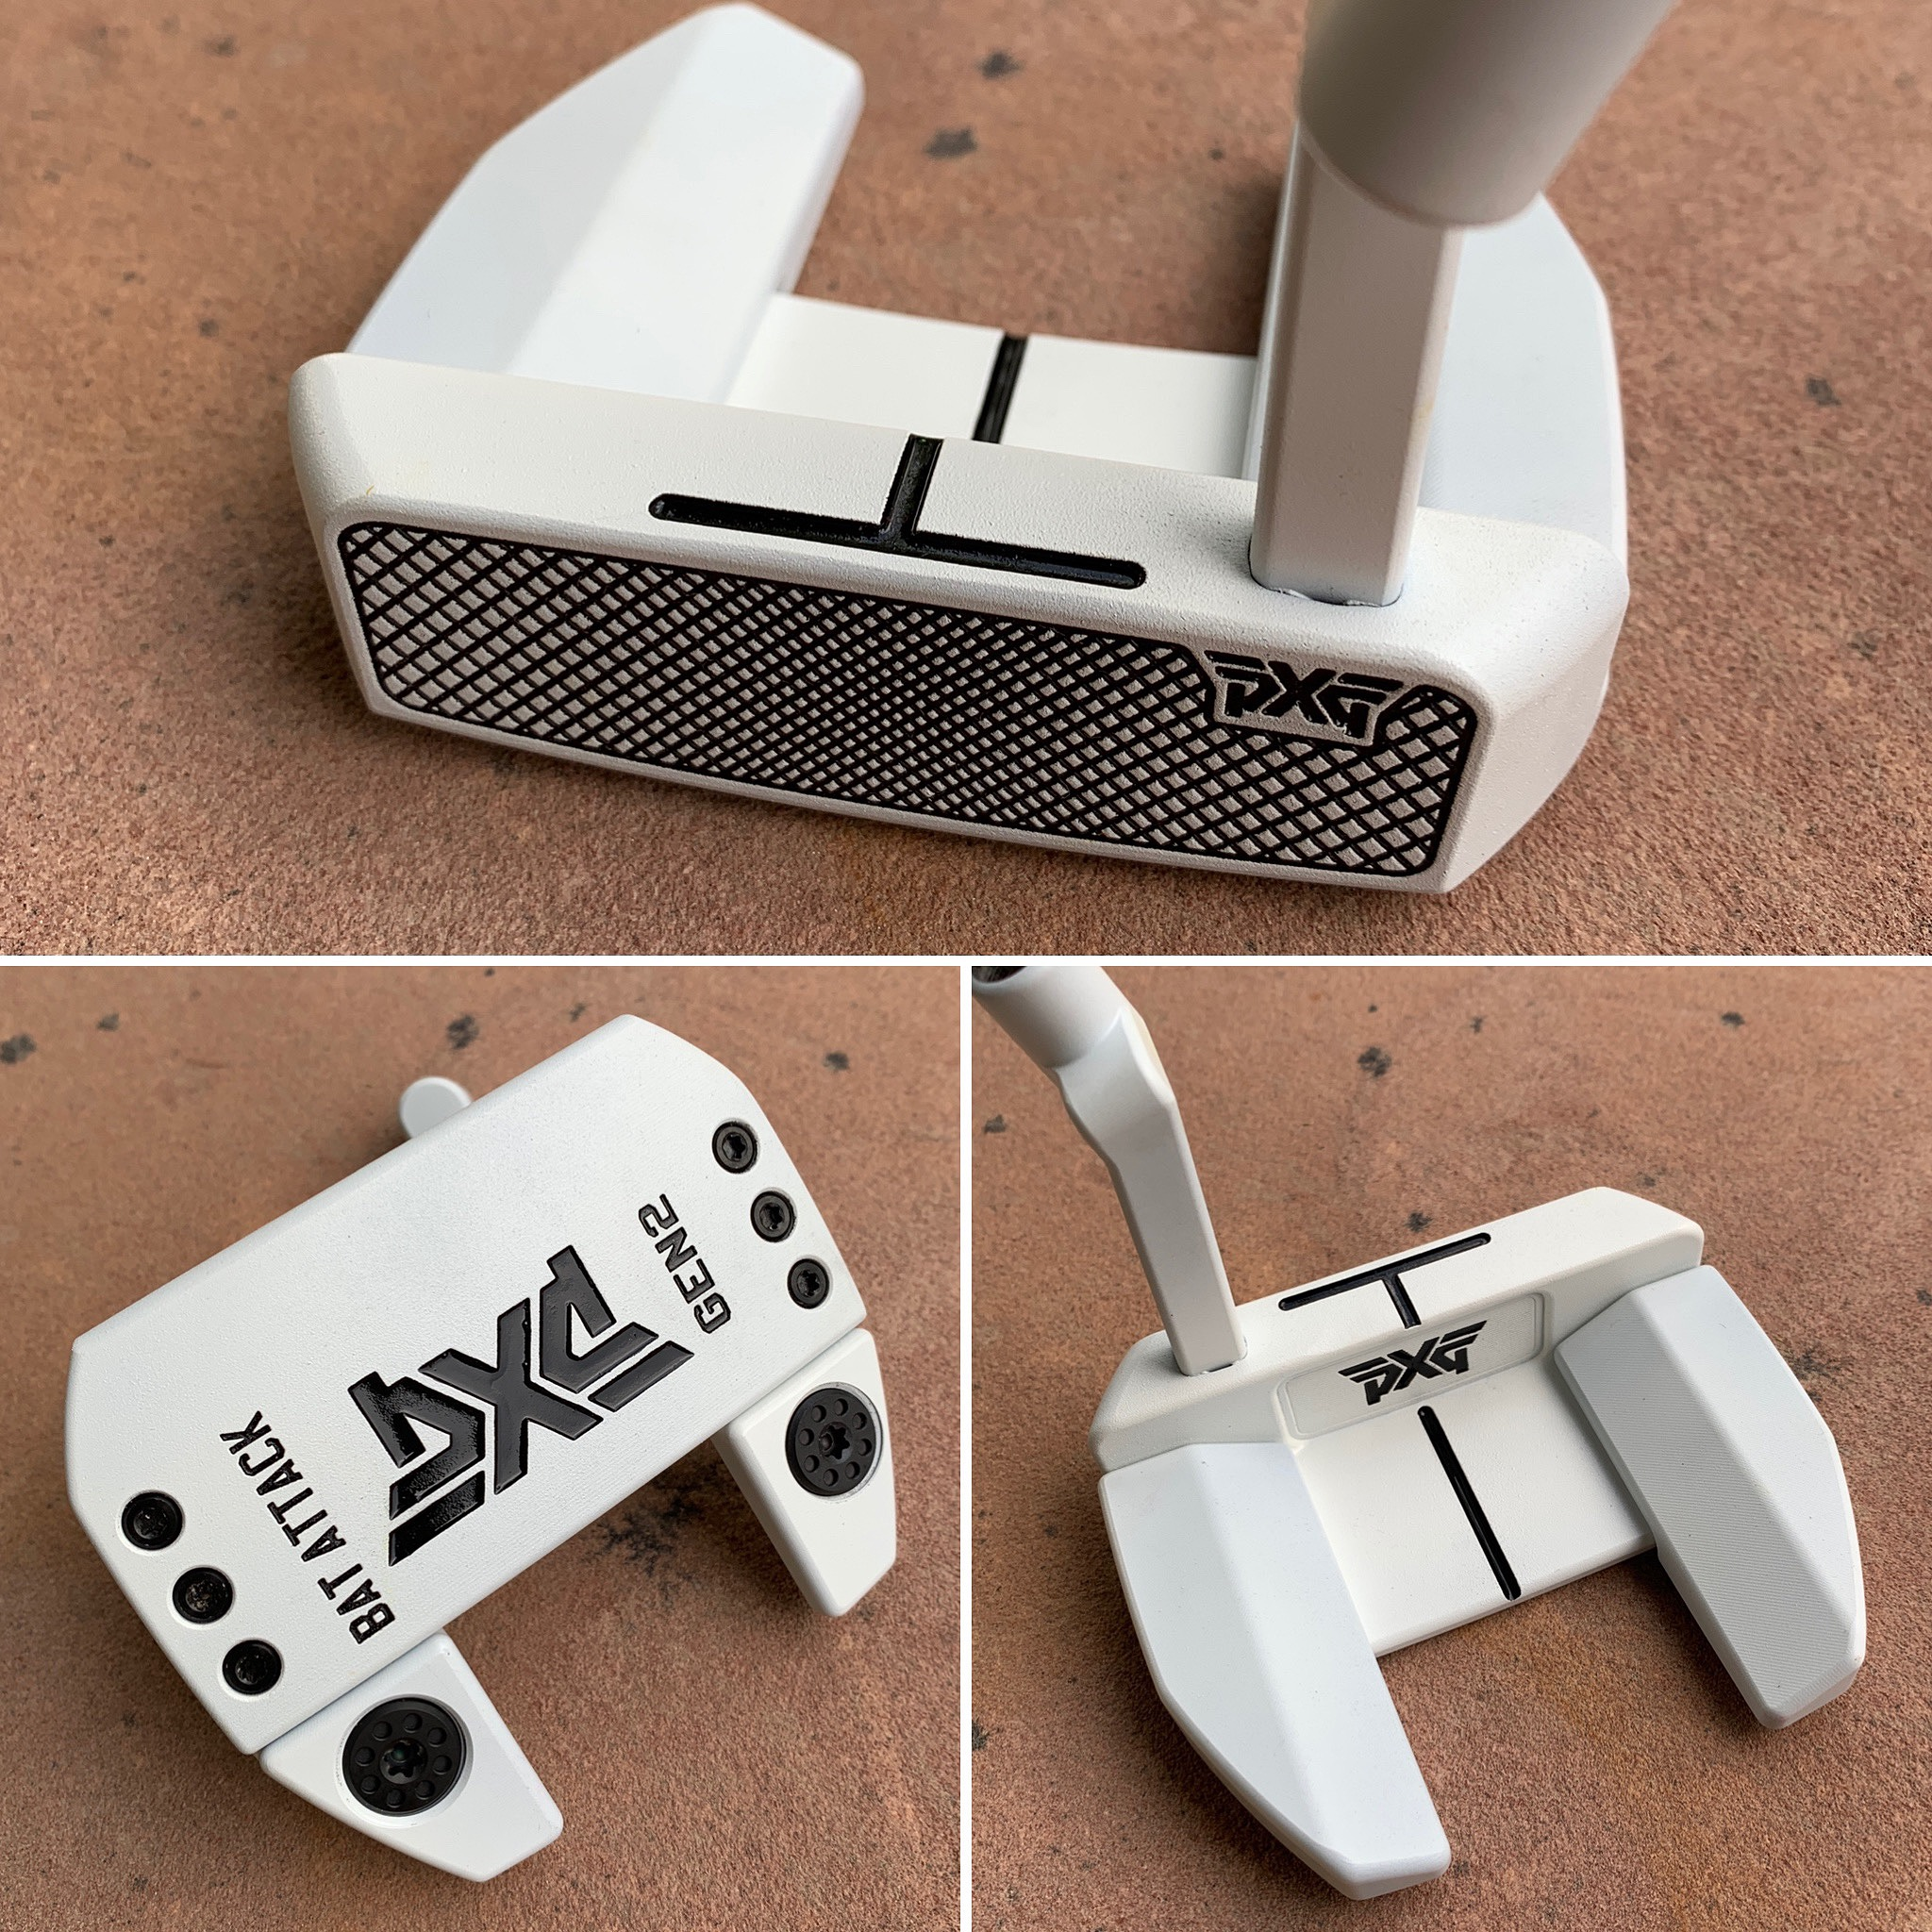 White Polymer PXG Bat Attack